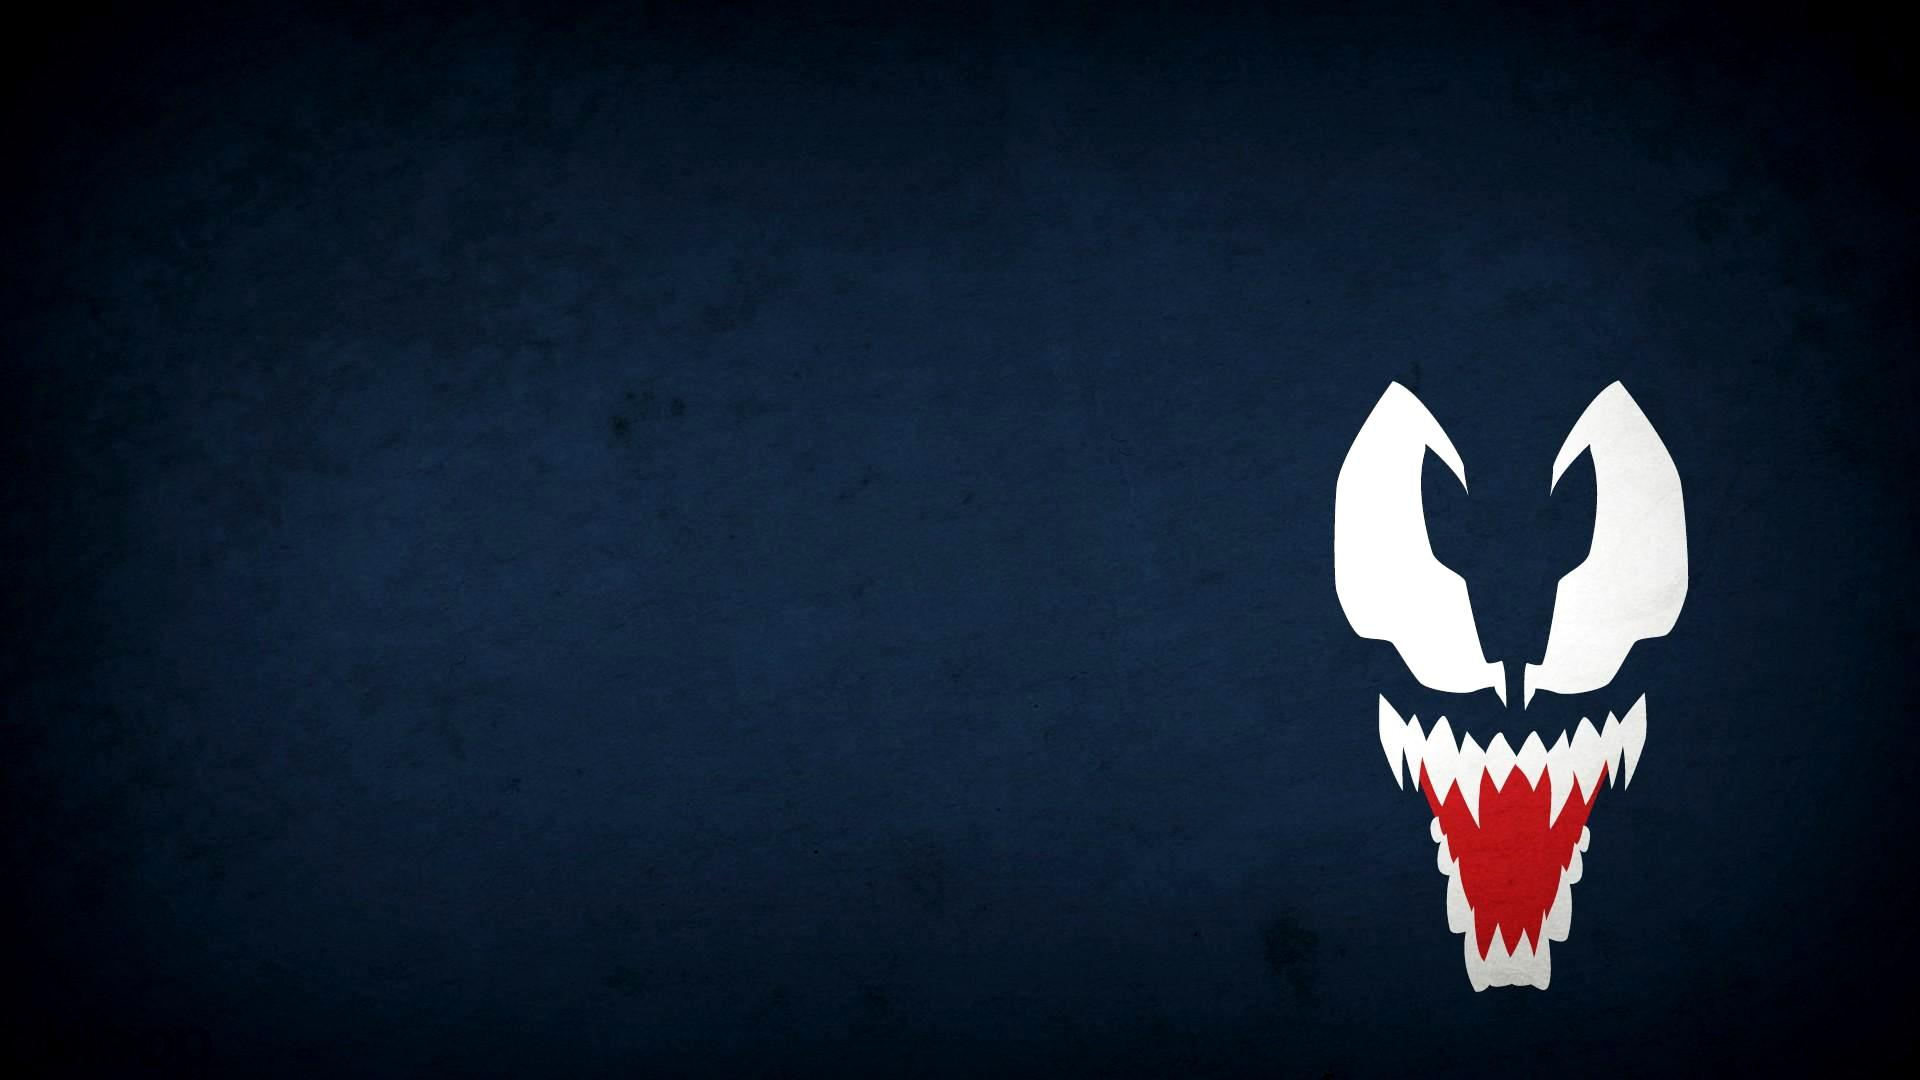 download venom hd, we are venom wallpaper